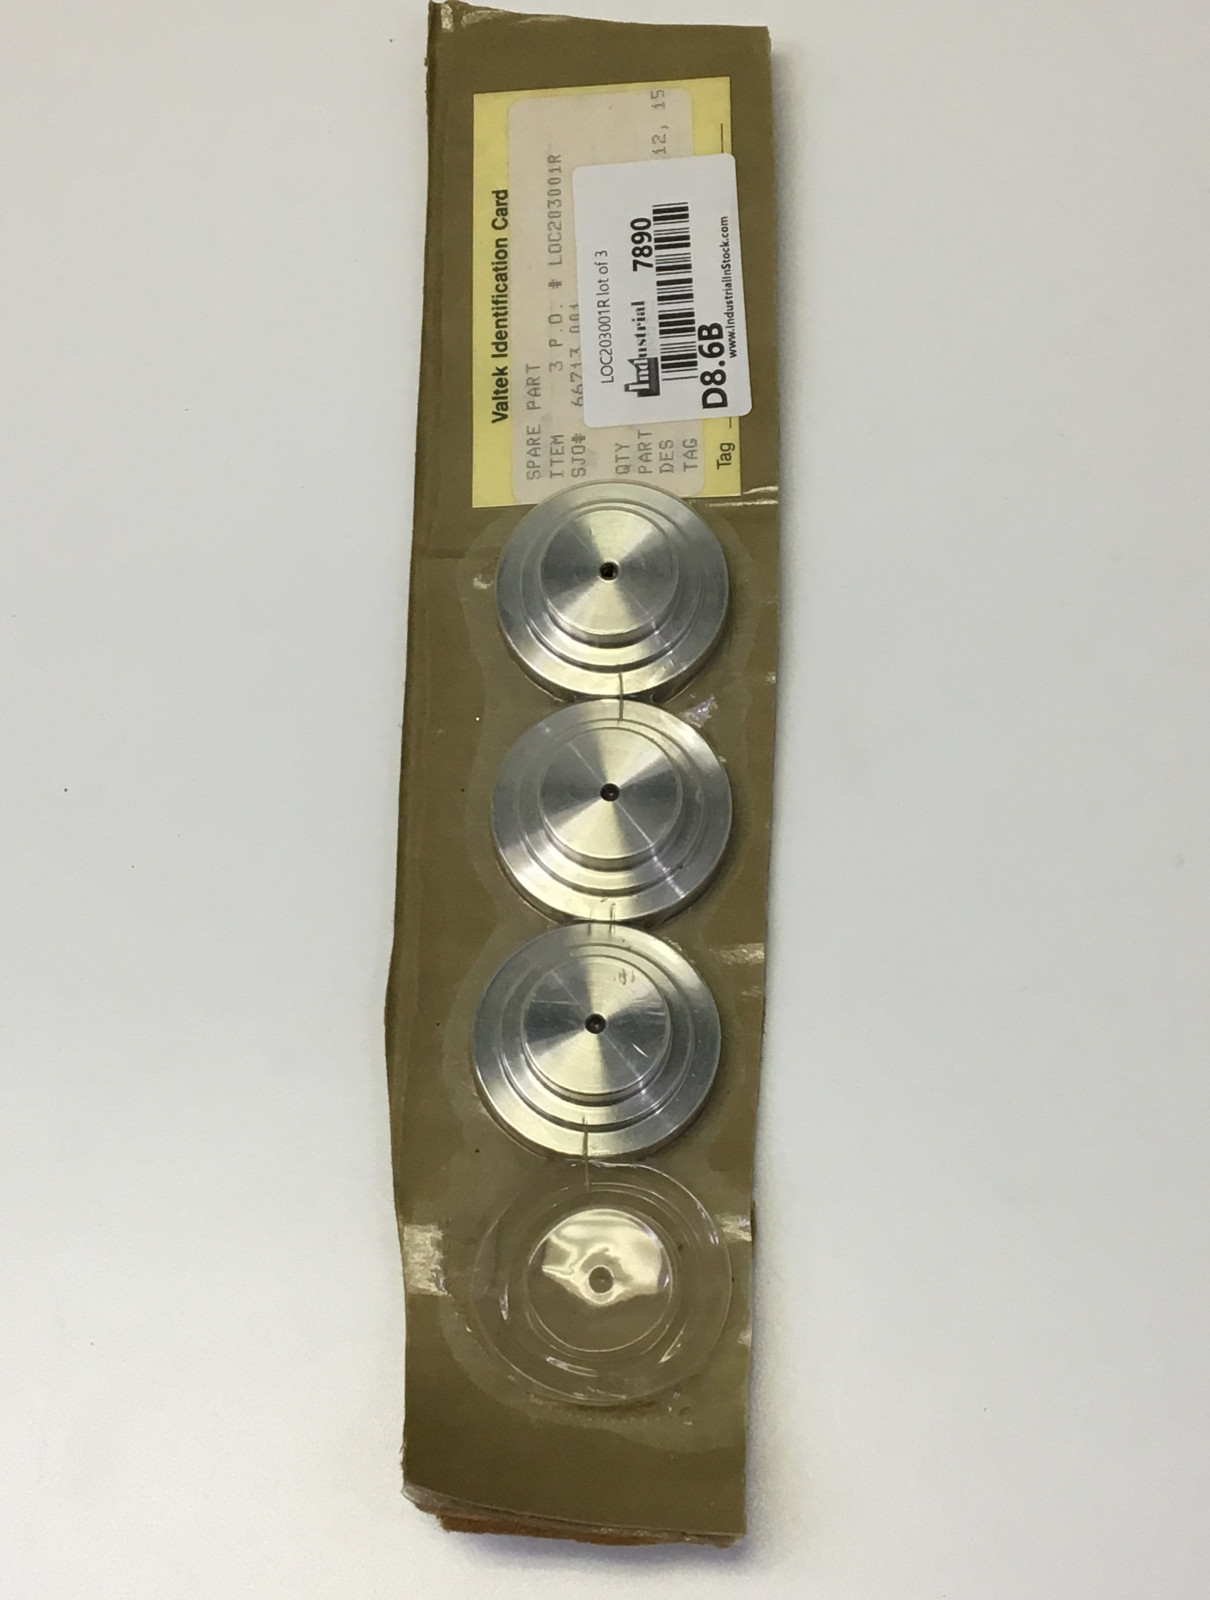 Valtek Part 002505.150.000 Spare Part 316 Stainless Steel  lot of 3